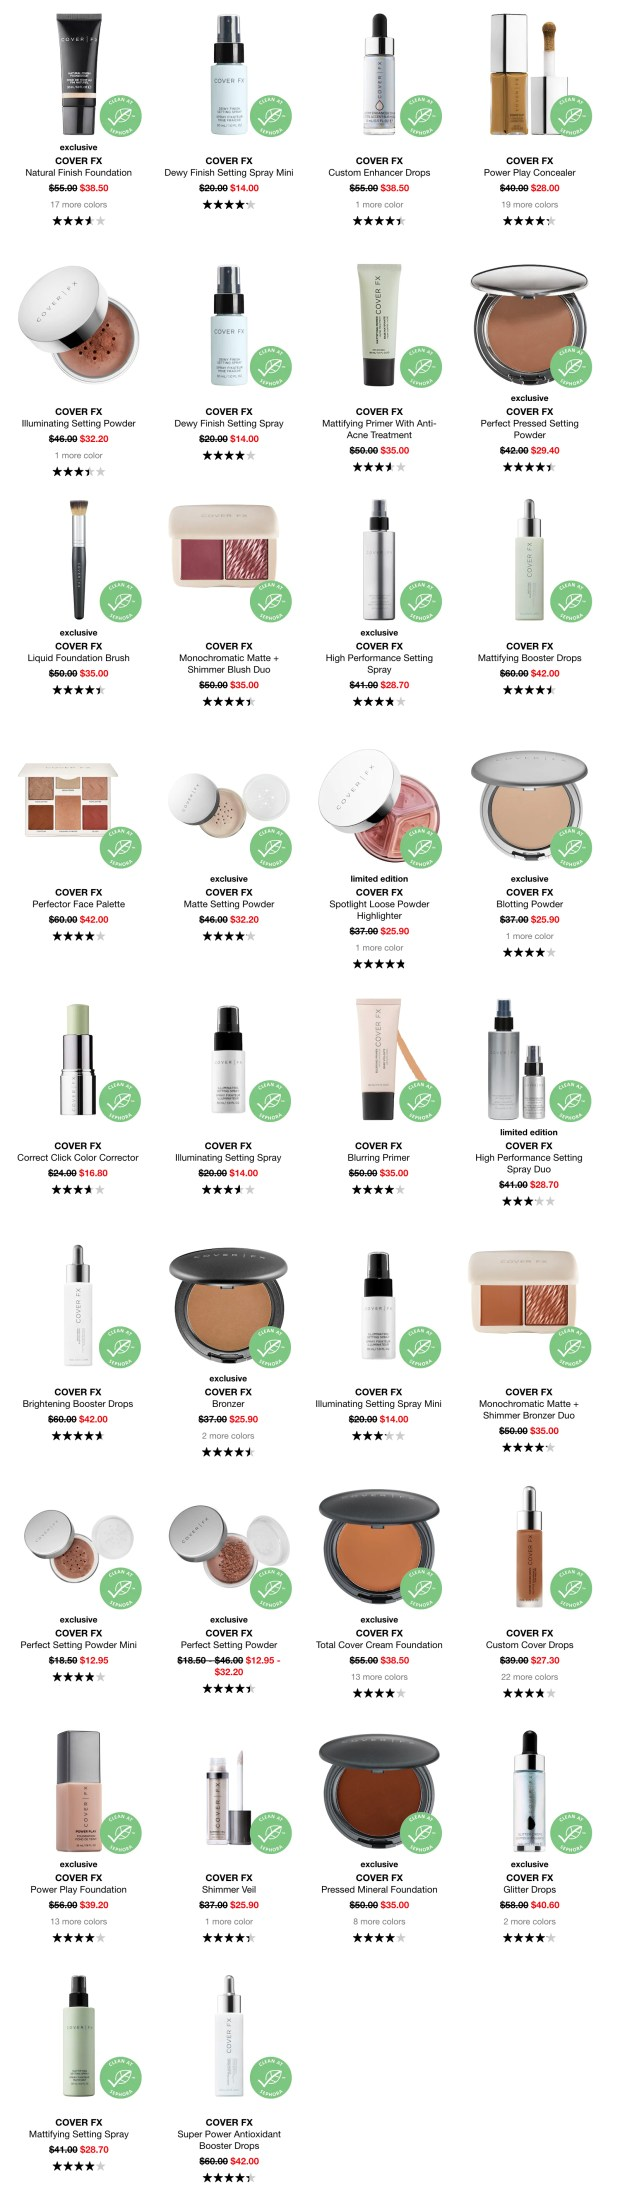 Sephora Canada Sweet Sale 30 Off Many Cover FX Products February 2020 Canadian Deals - Glossense